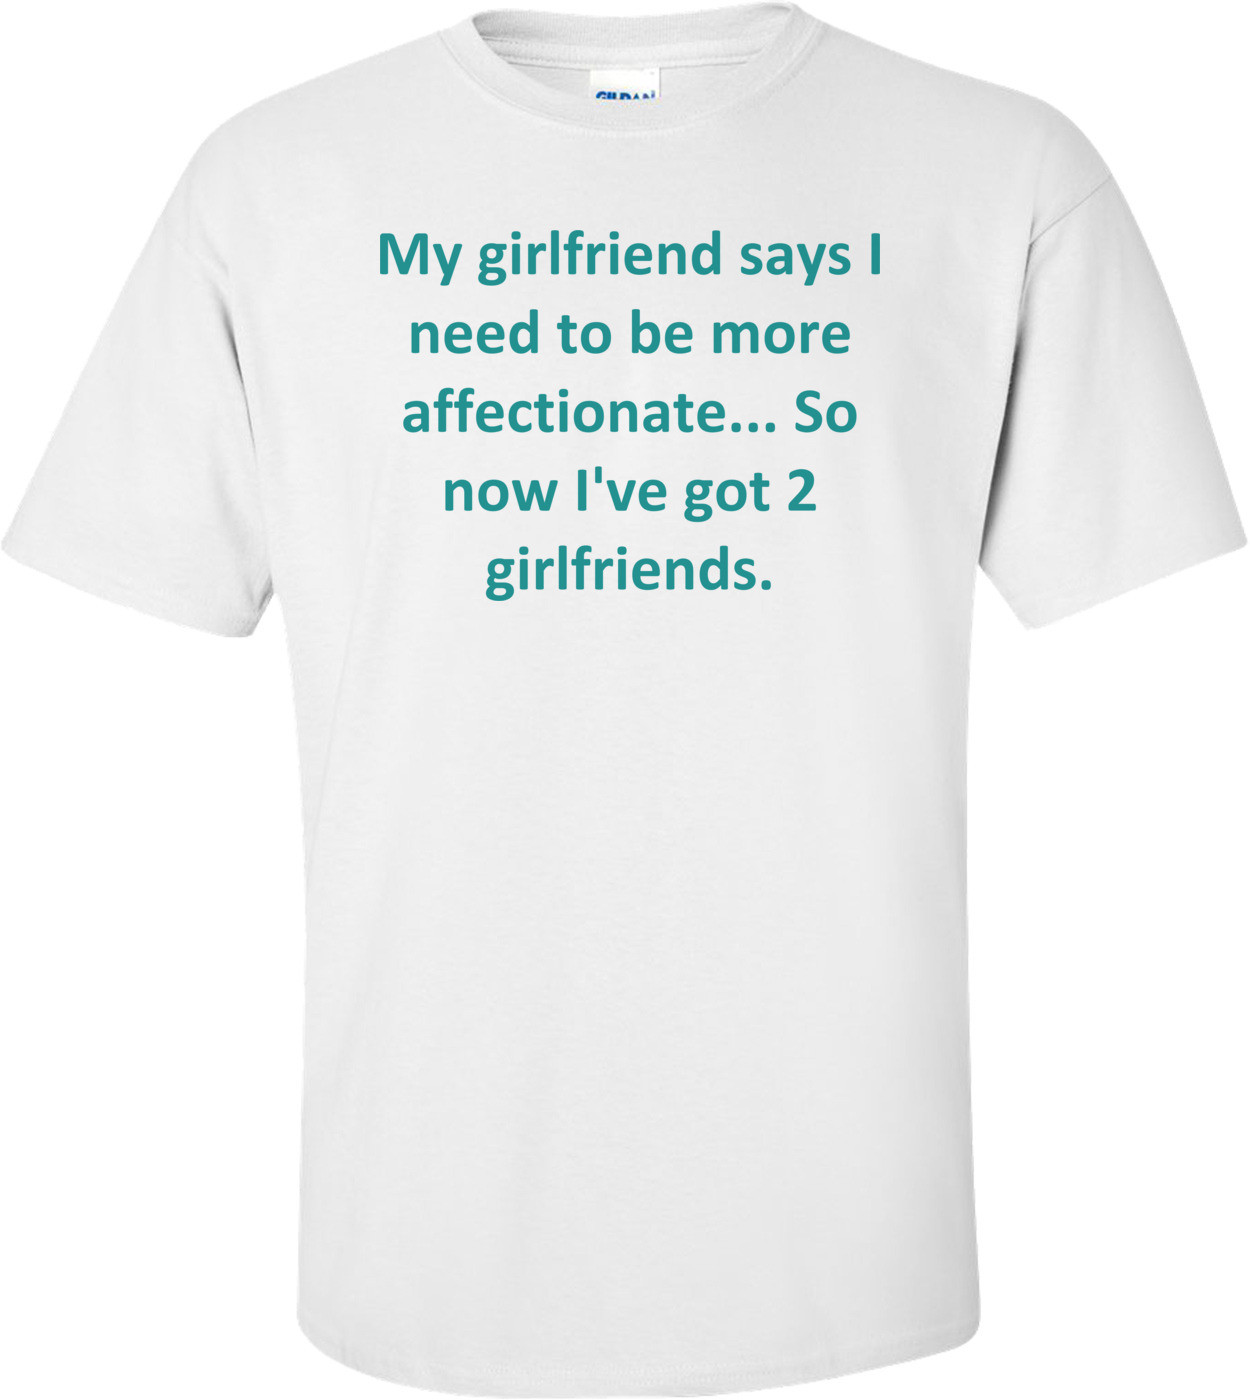 My girlfriend says I need to be more affectionate... So now I've got 2 girlfriends. Shirt